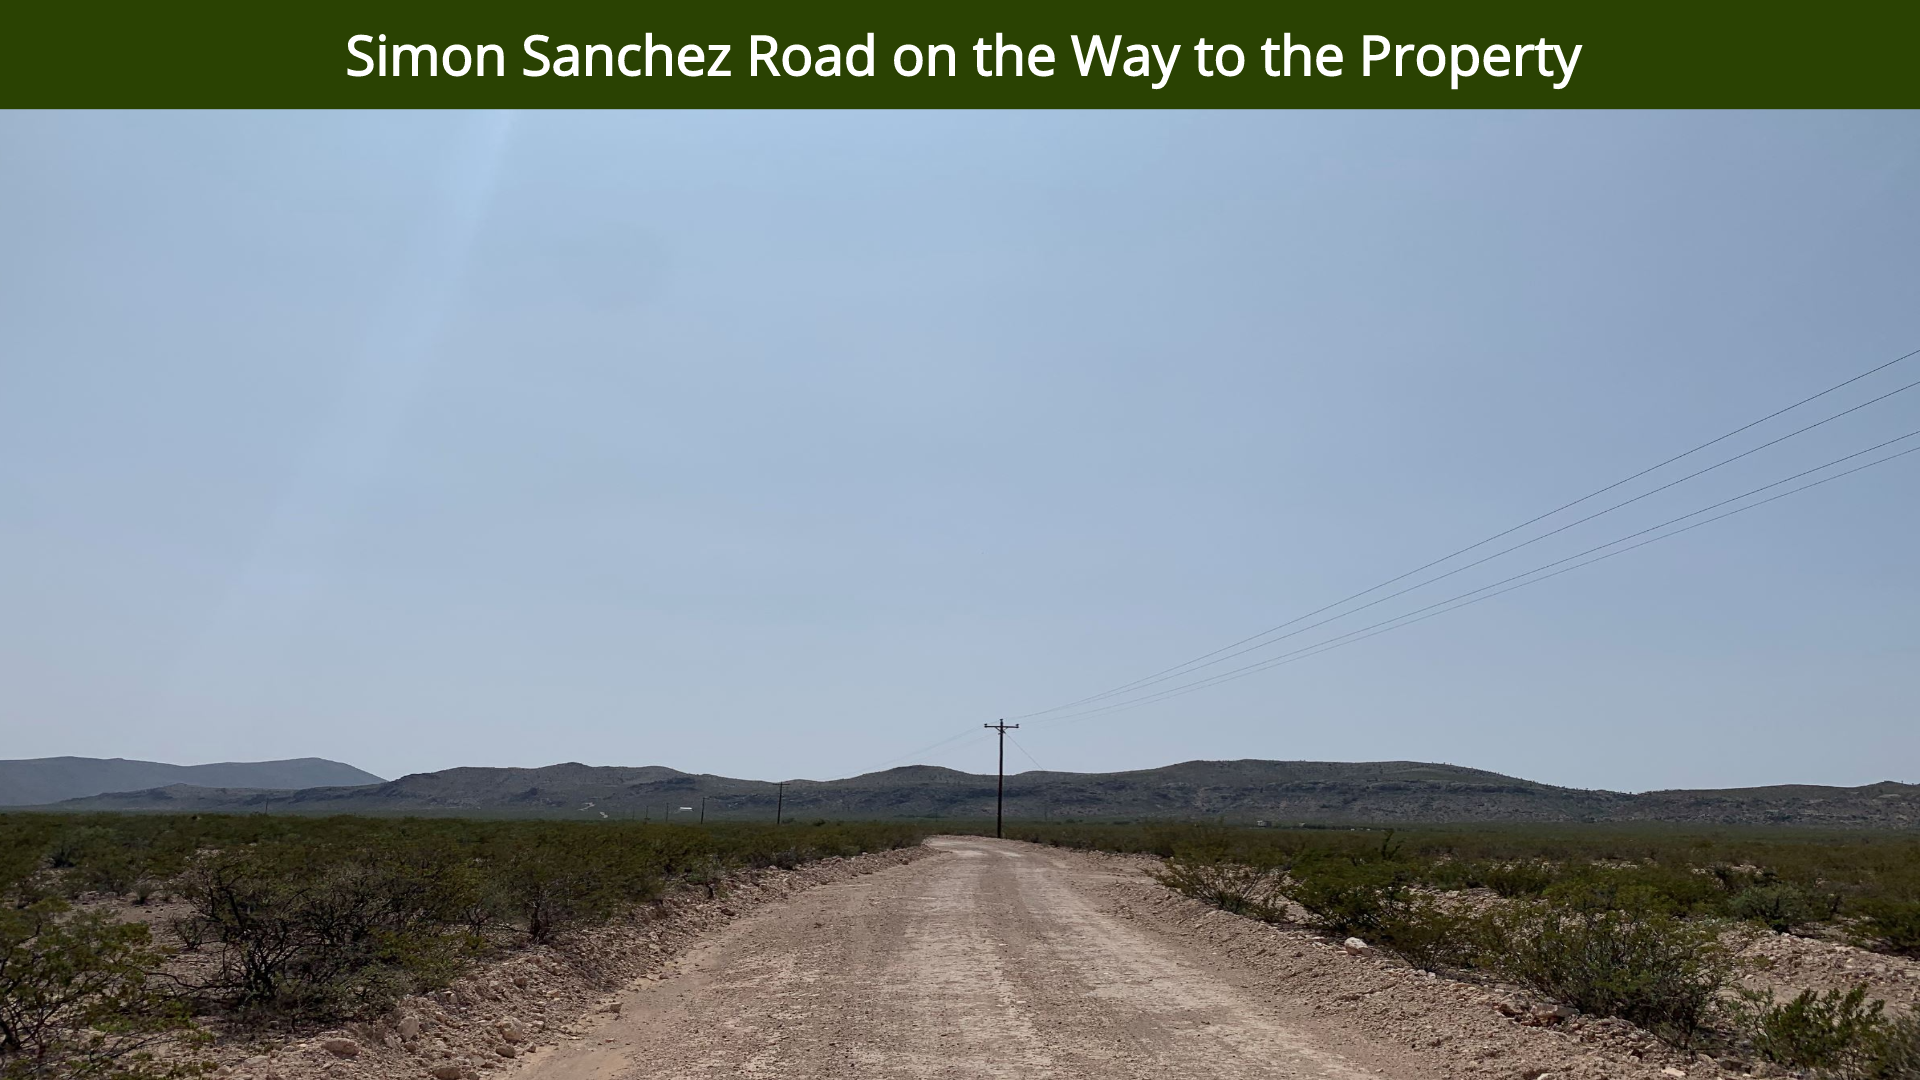 Simon Sanchez Road on the Way to the Pro